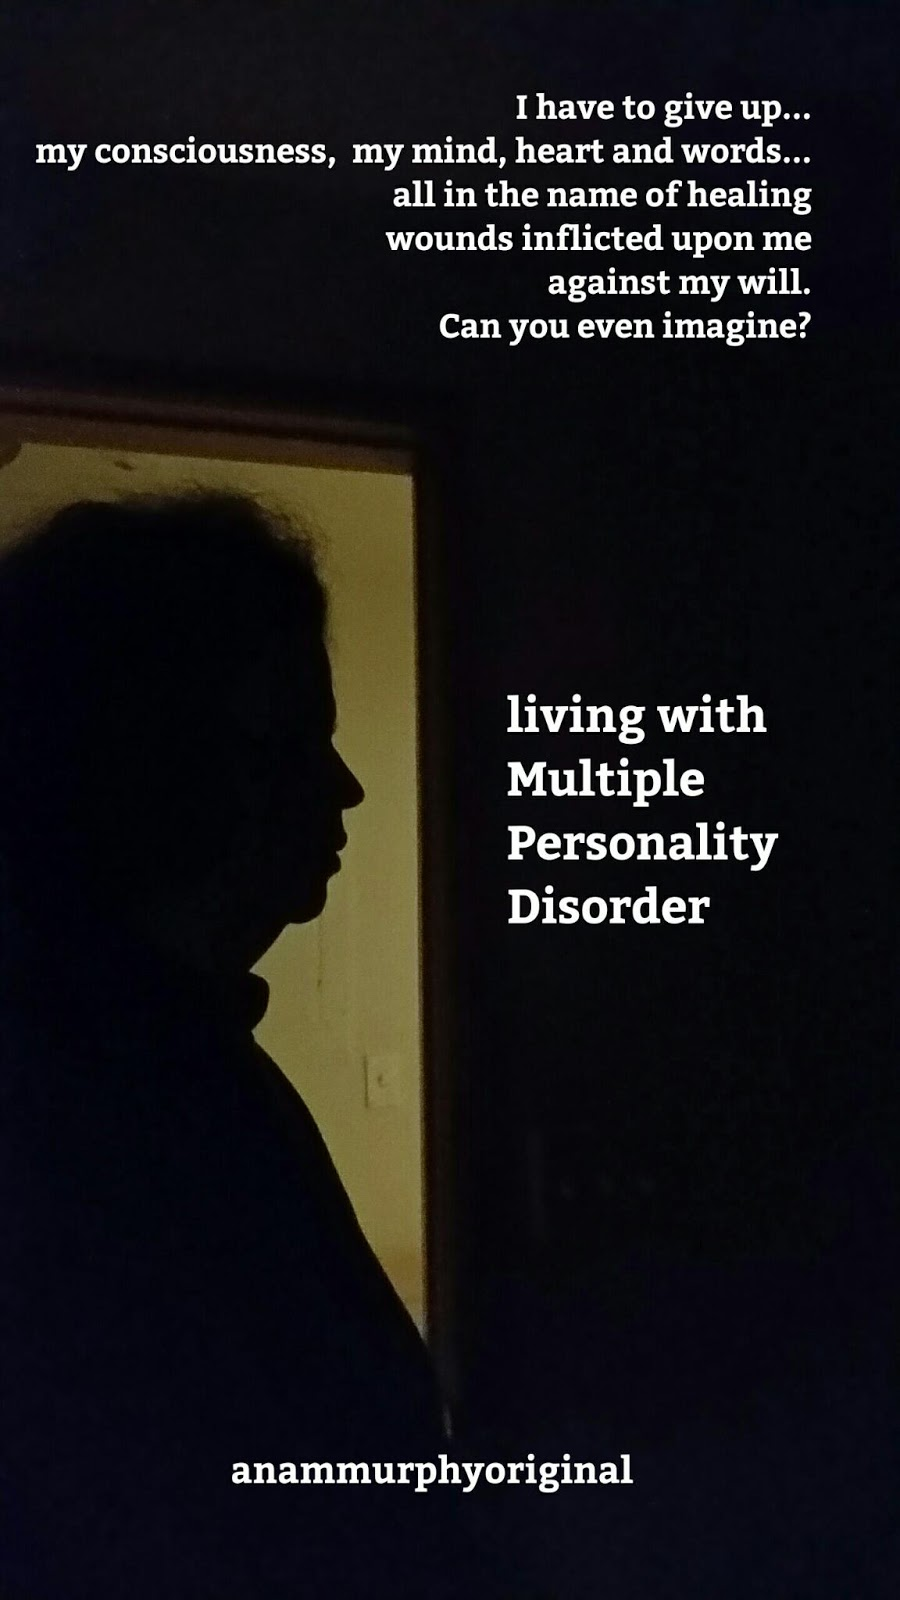 living with aspergers syndrome essay Living with asperger's syndrome: a sister's story jan 05, 2008 by alyson mcnutt english alyson mcnutt english is a freelance writer and photographer from mississippi.